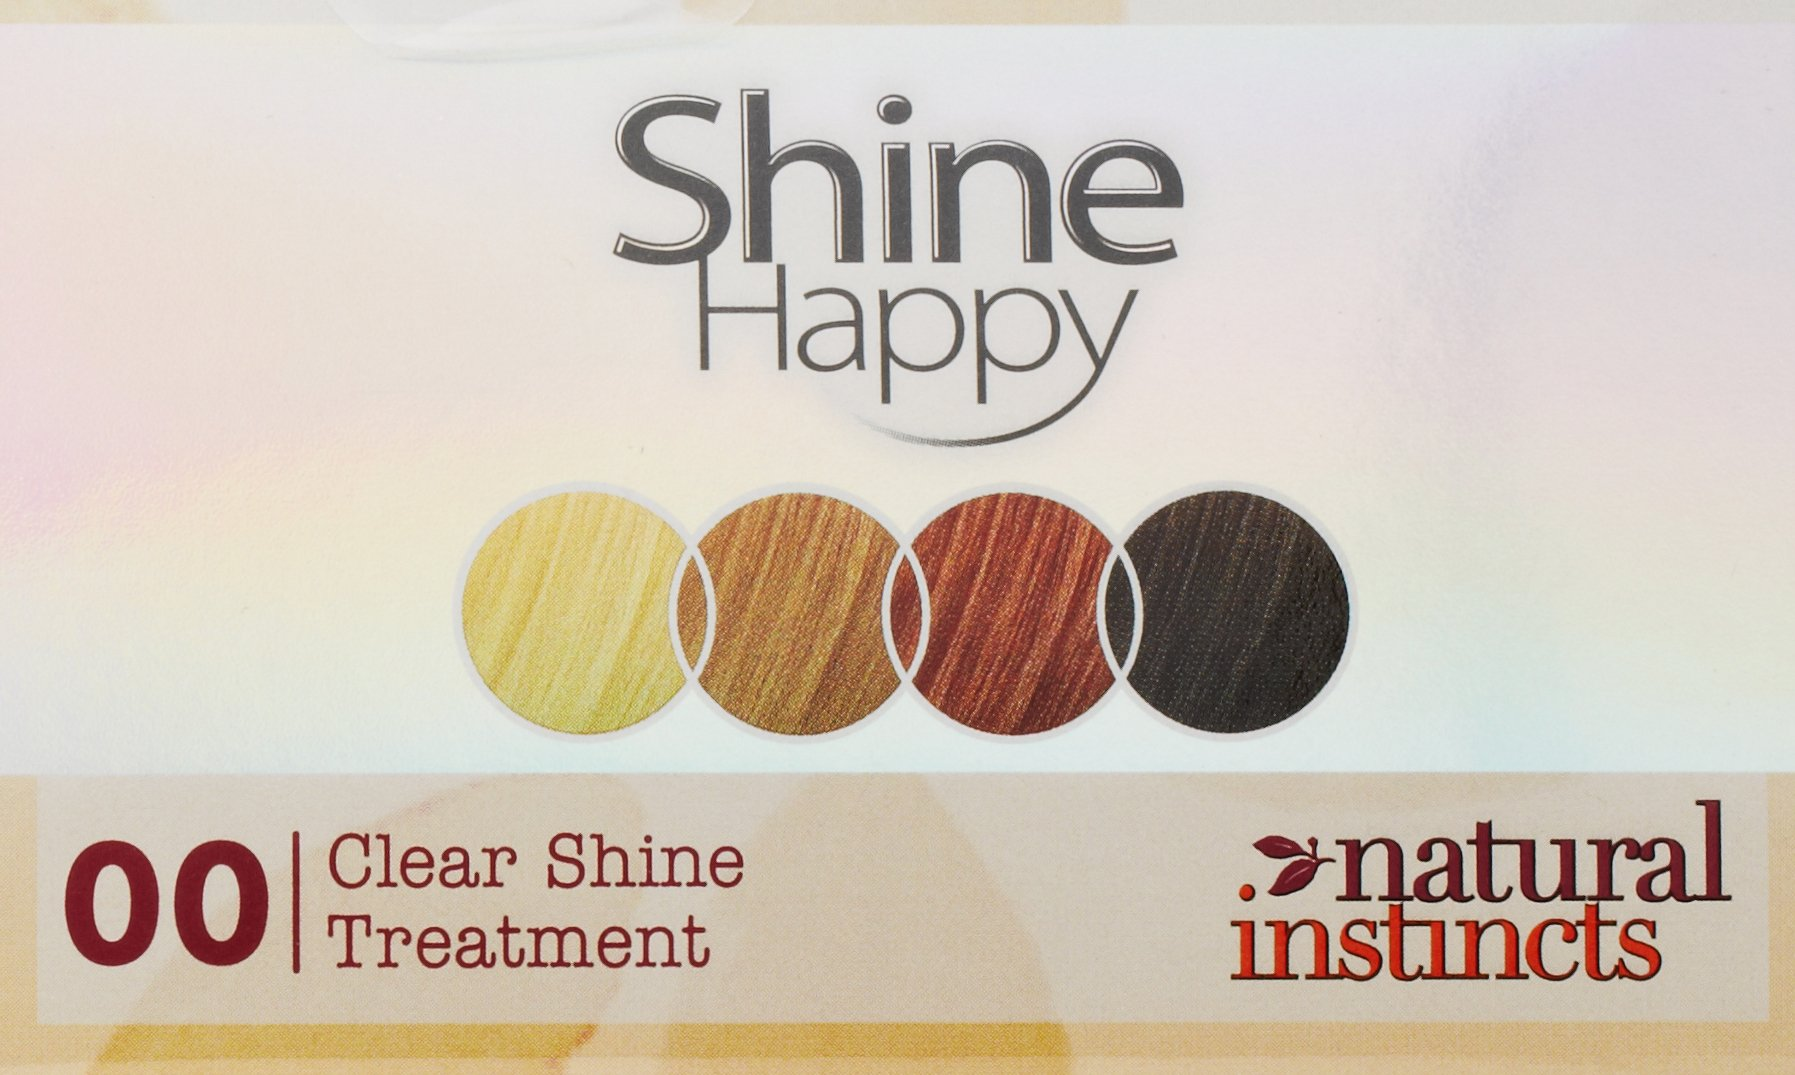 Clairol Natural Instincts Hair Color Shine Happy 00 Kit, Clear Shine, 3 Pack, Hair Shine Treatment With Weekly Conditioning Treatments by Clairol